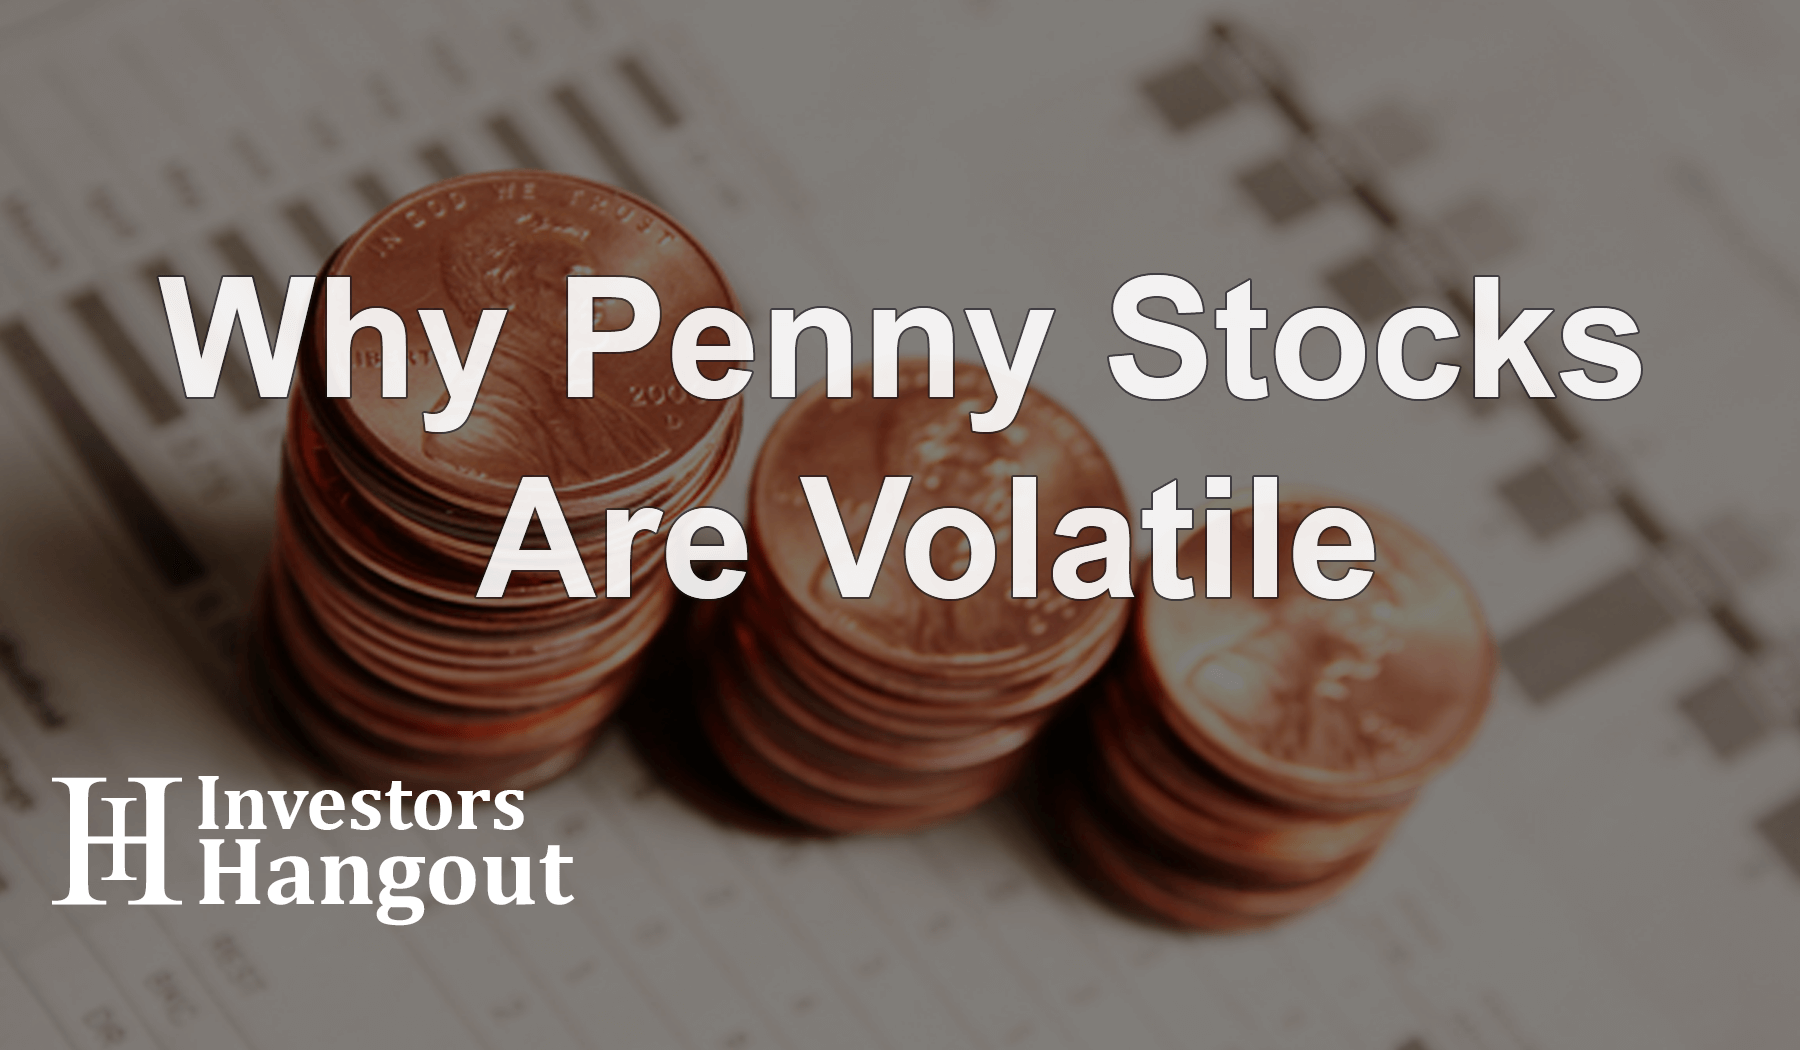 Why Penny Stocks Are Volatile